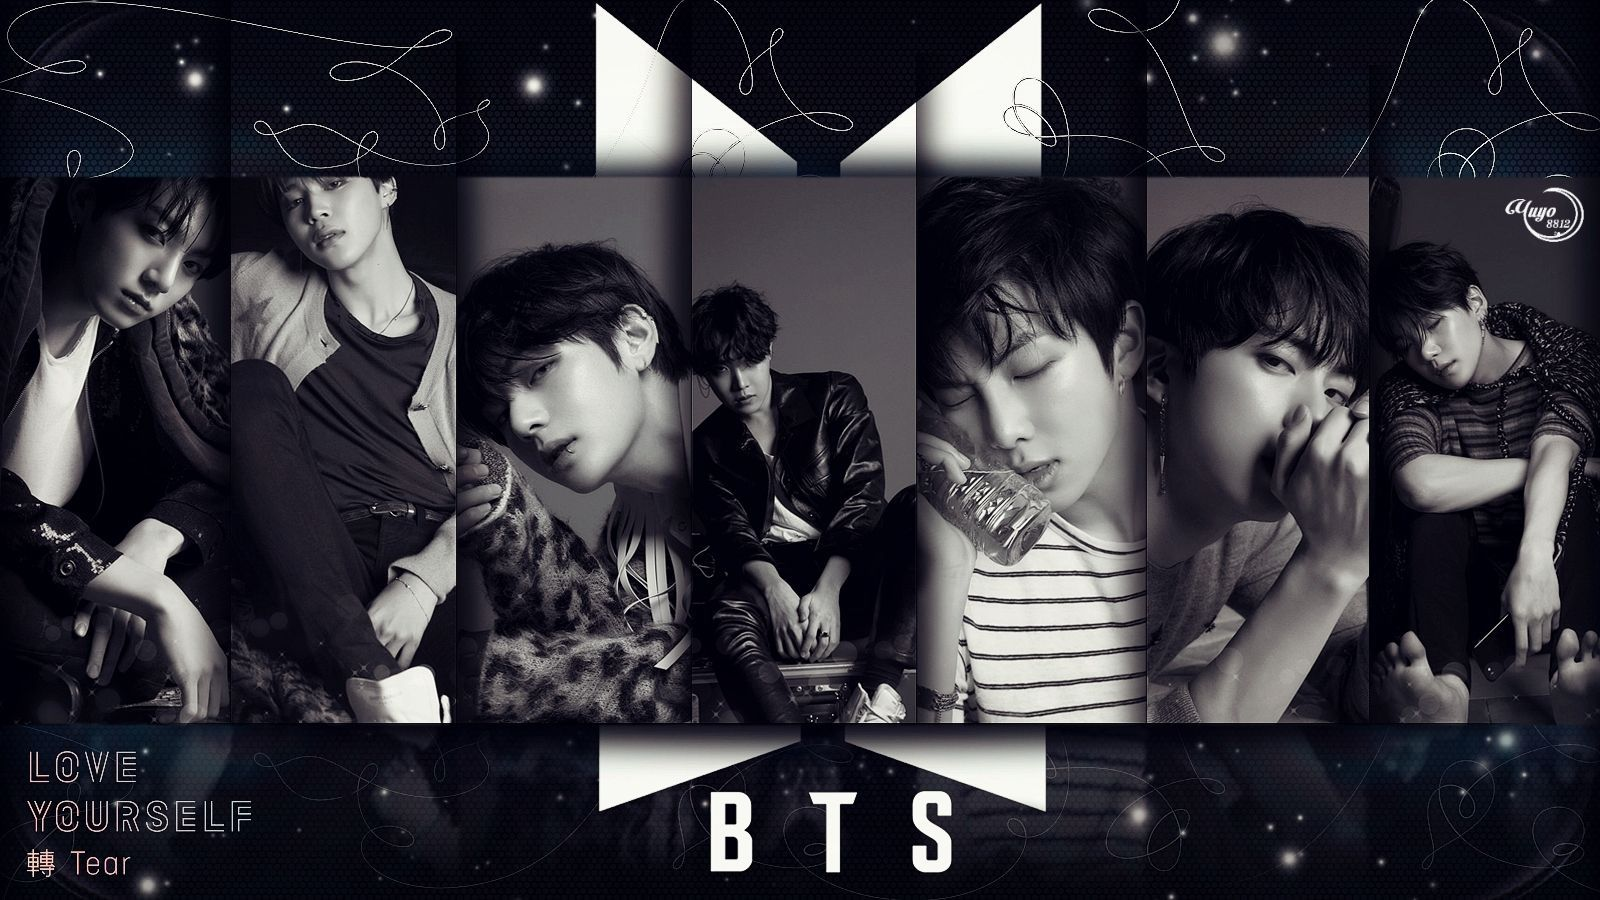 Bts Fake Love Wallpapers Top Free Bts Fake Love Backgrounds Wallpaperaccess